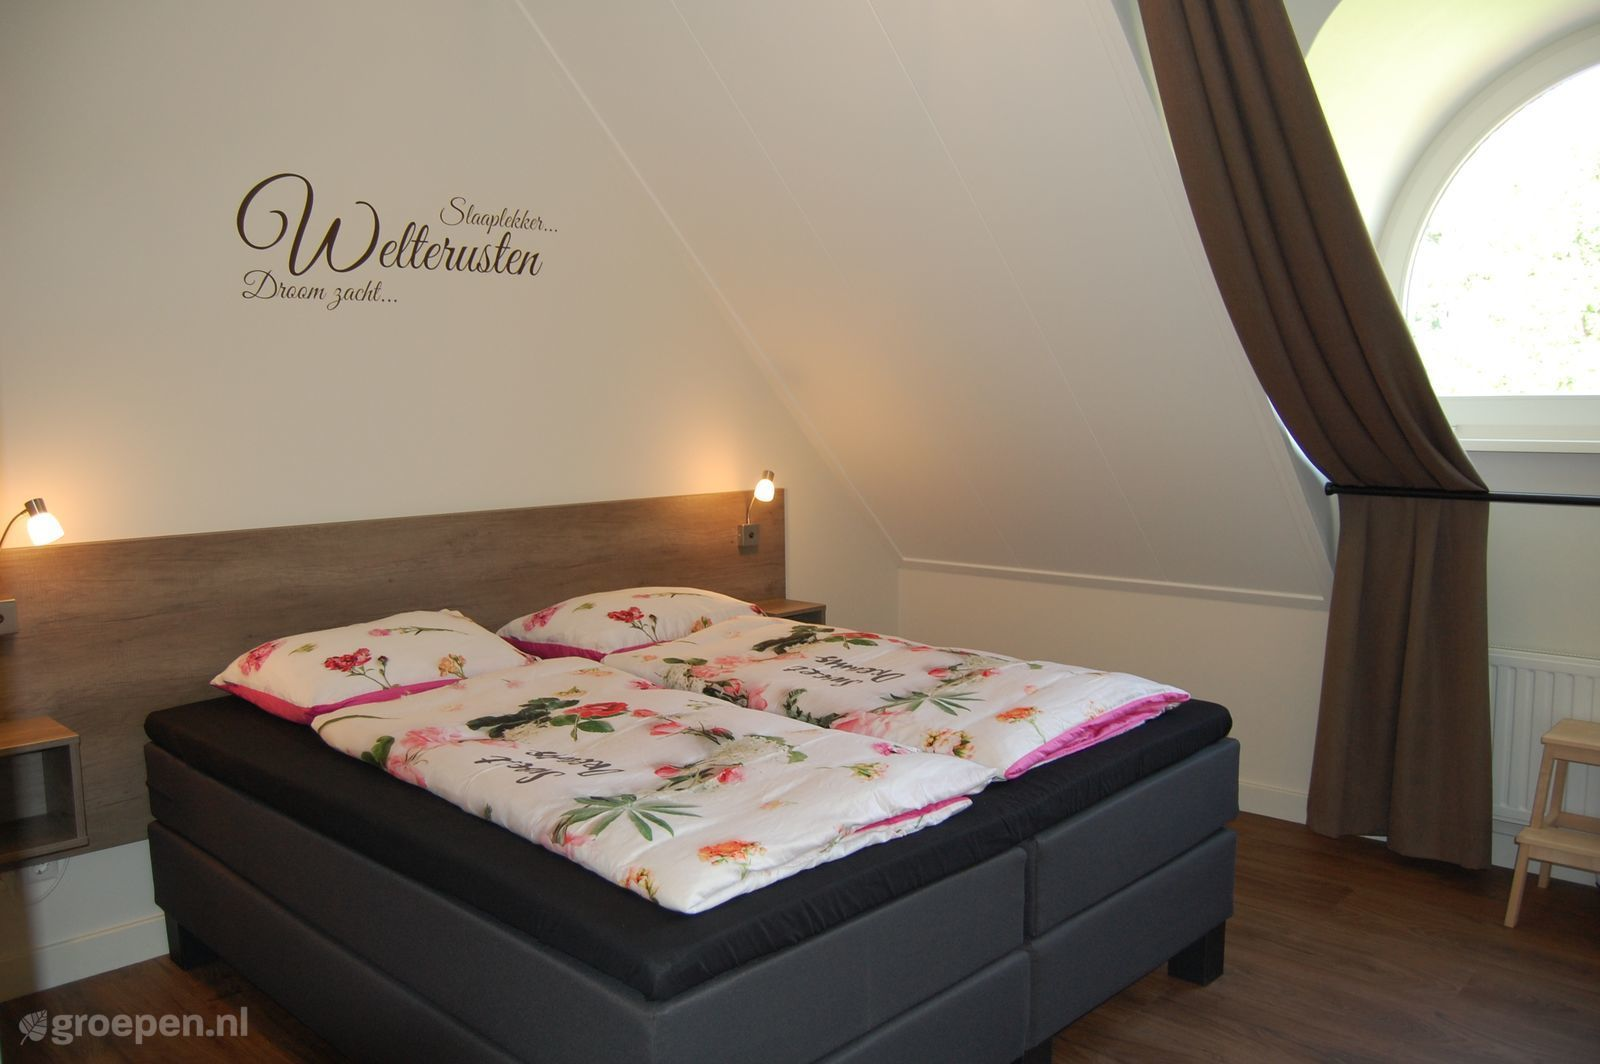 Group accommodation Handel